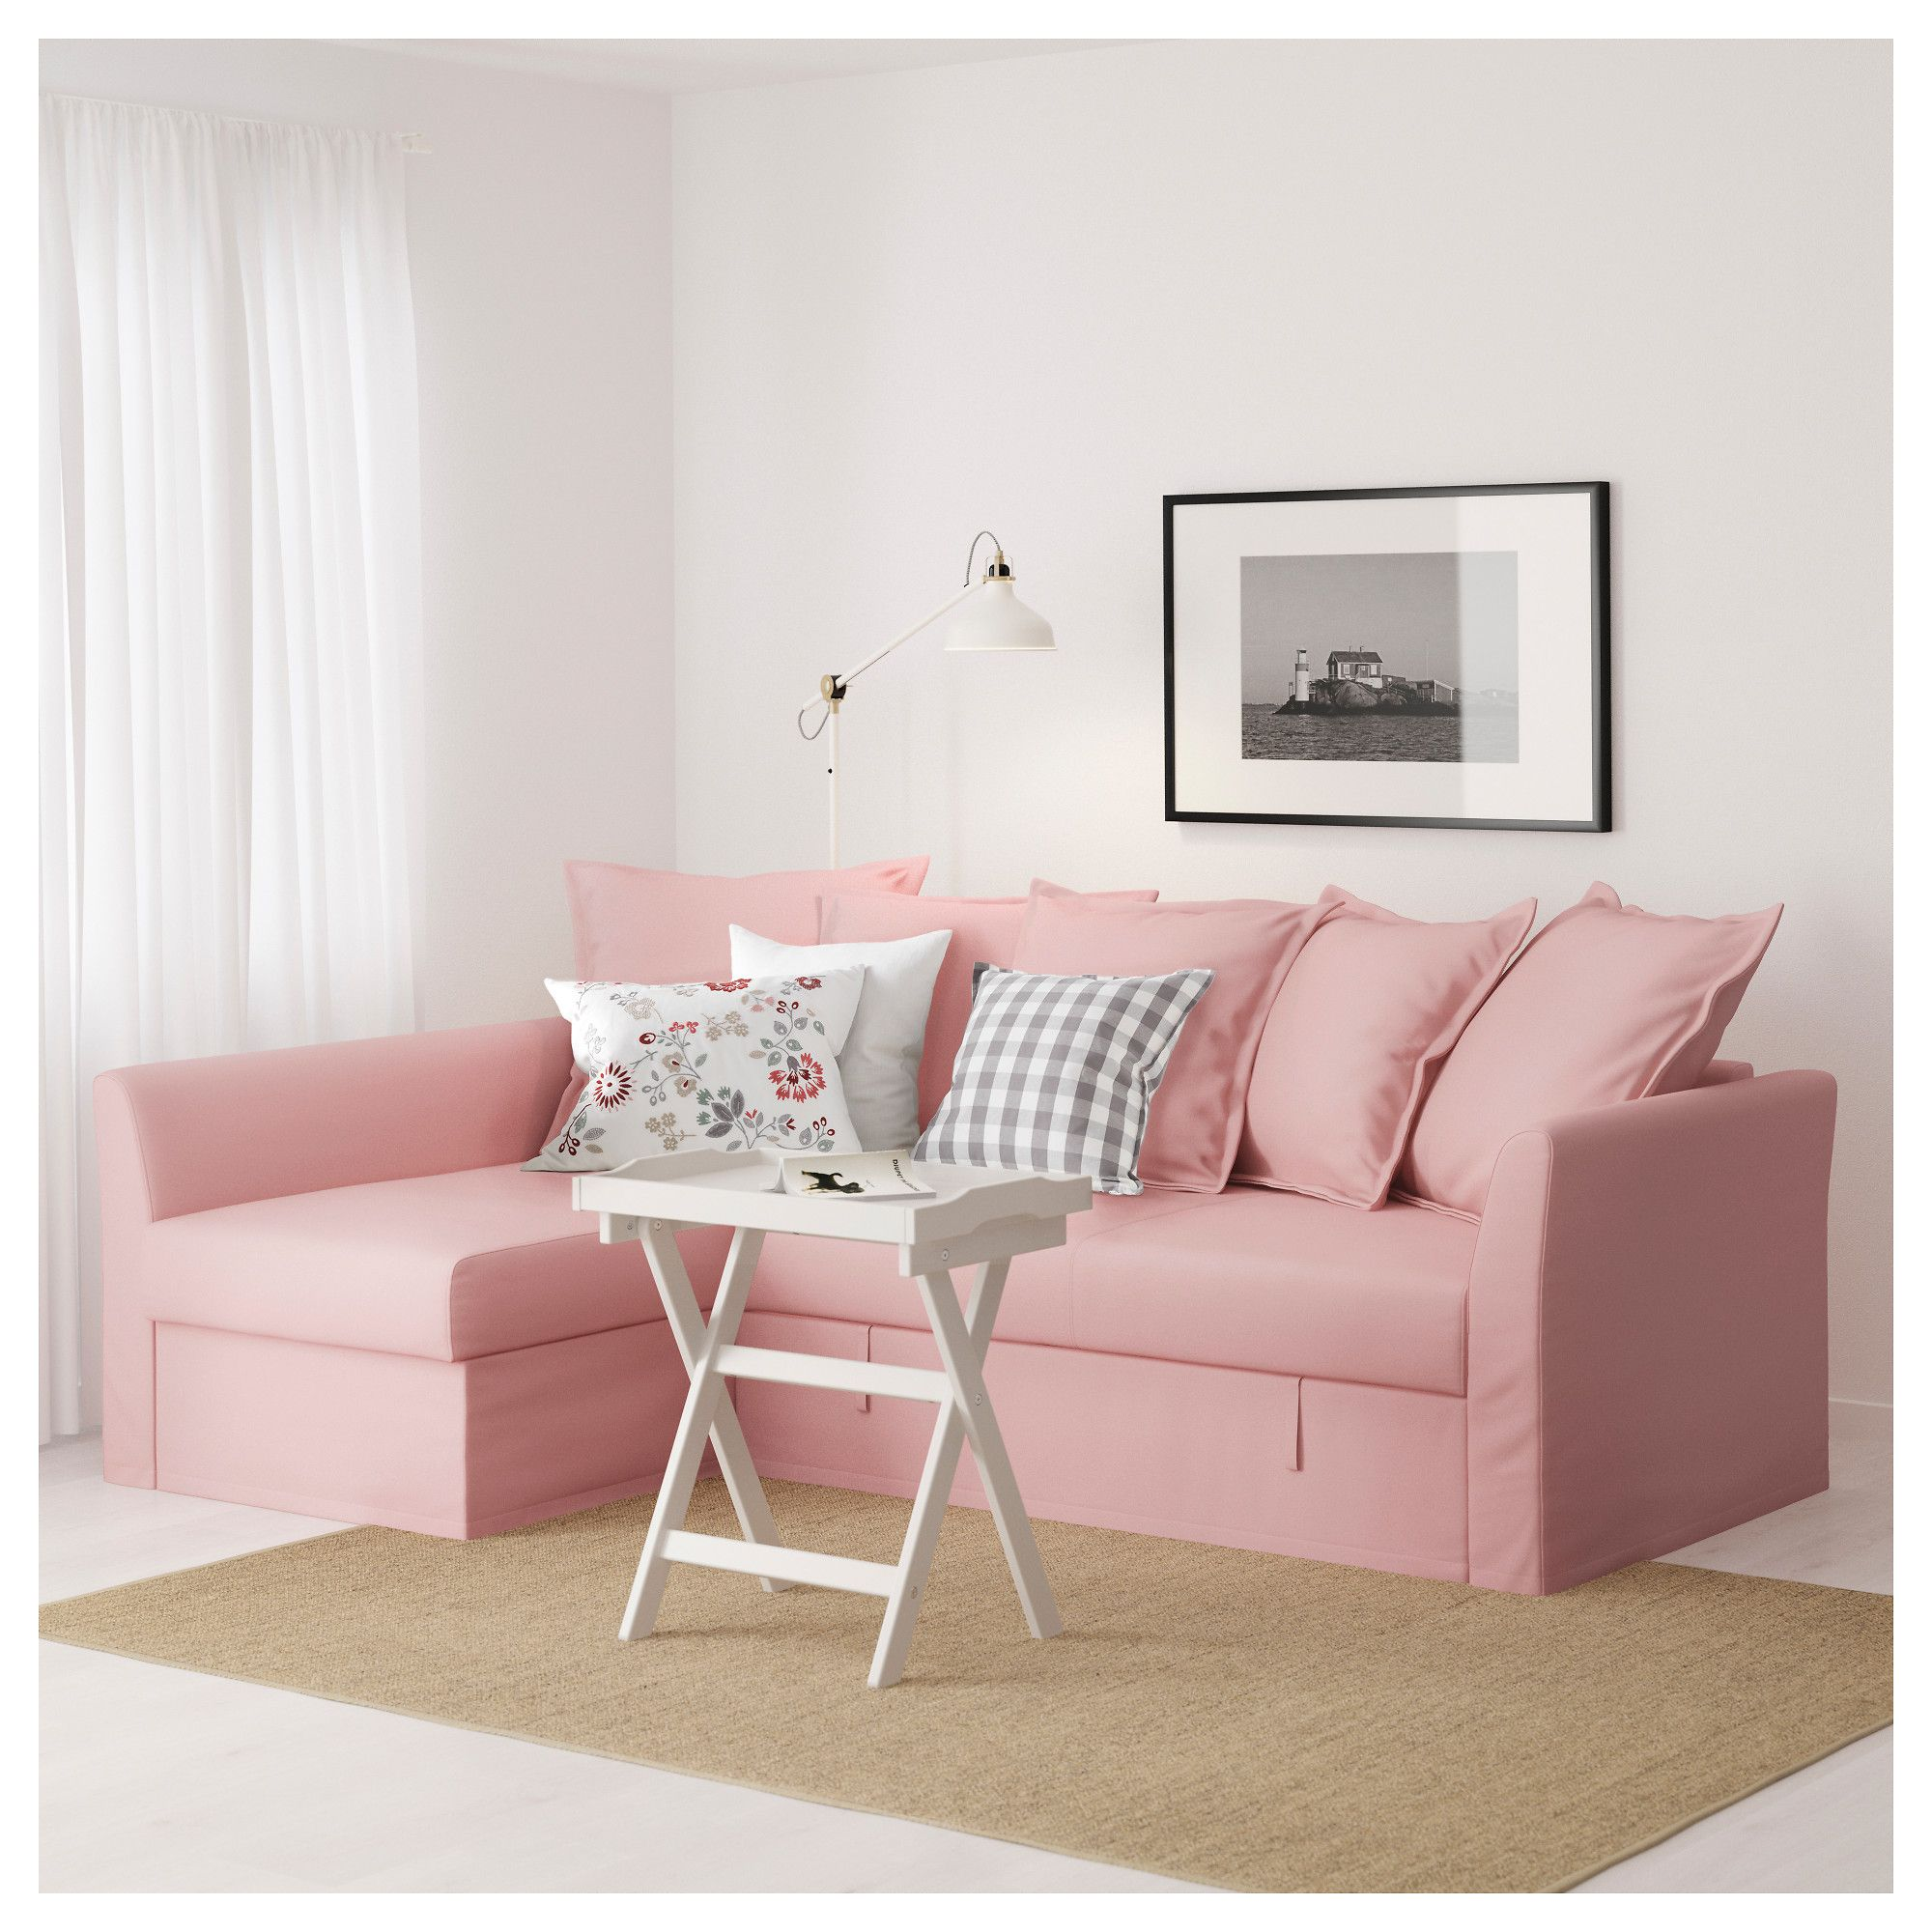 Fresh Light Pink Sectional Sofa Epic Light Pink Sectional Sofa 55 Sofa Room Ide Most Comfortable Sleeper Sofa Sofa Bed With Chaise Discount Bedroom Furniture